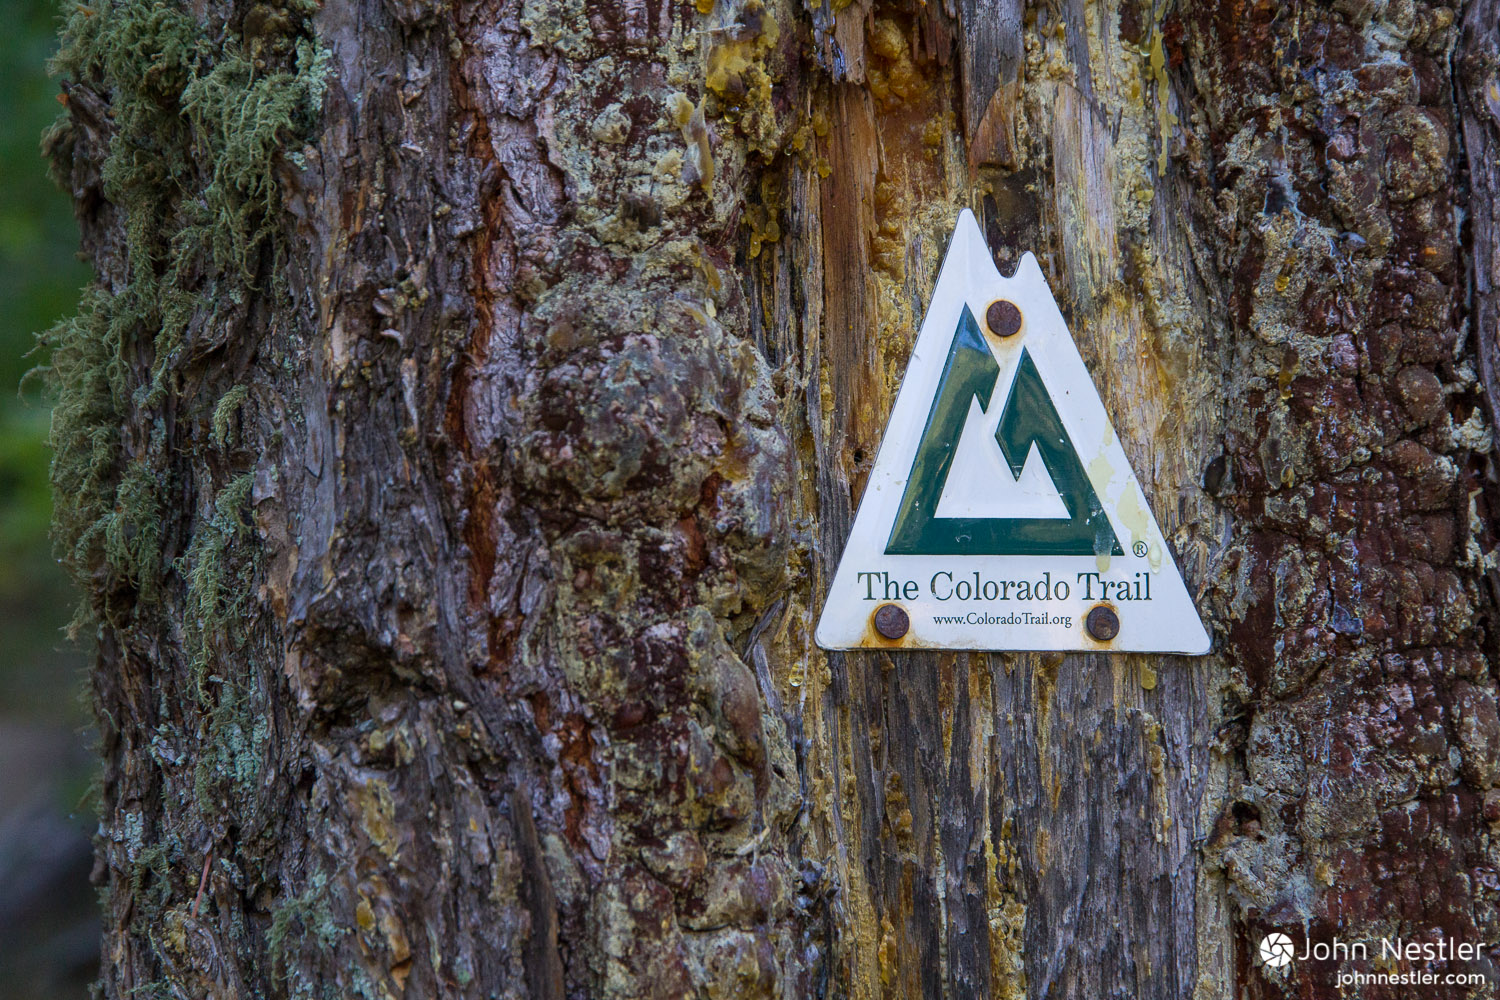 The classic Colorado Trail confidence marker, a comforting sight.